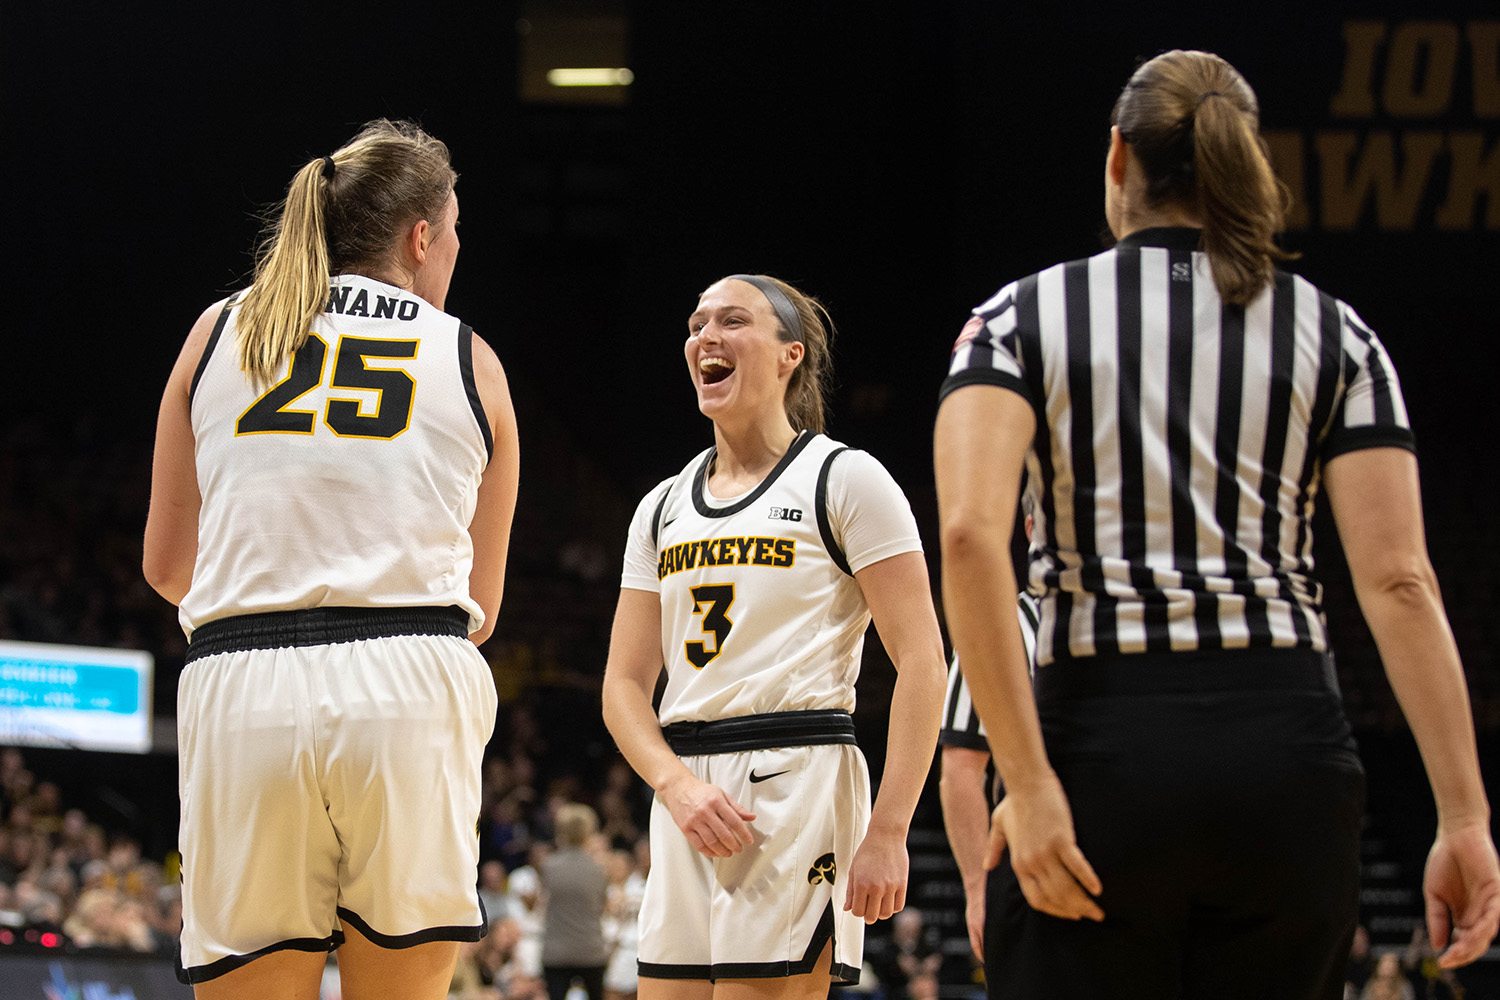 Iowa guard Makenzie Meyer reacts to a foul drawn by Monika Czinano during a women's basketball game between Iowa and Nebraska at Carver Hawkeye Arena on Monday Feb. 6, 2020.